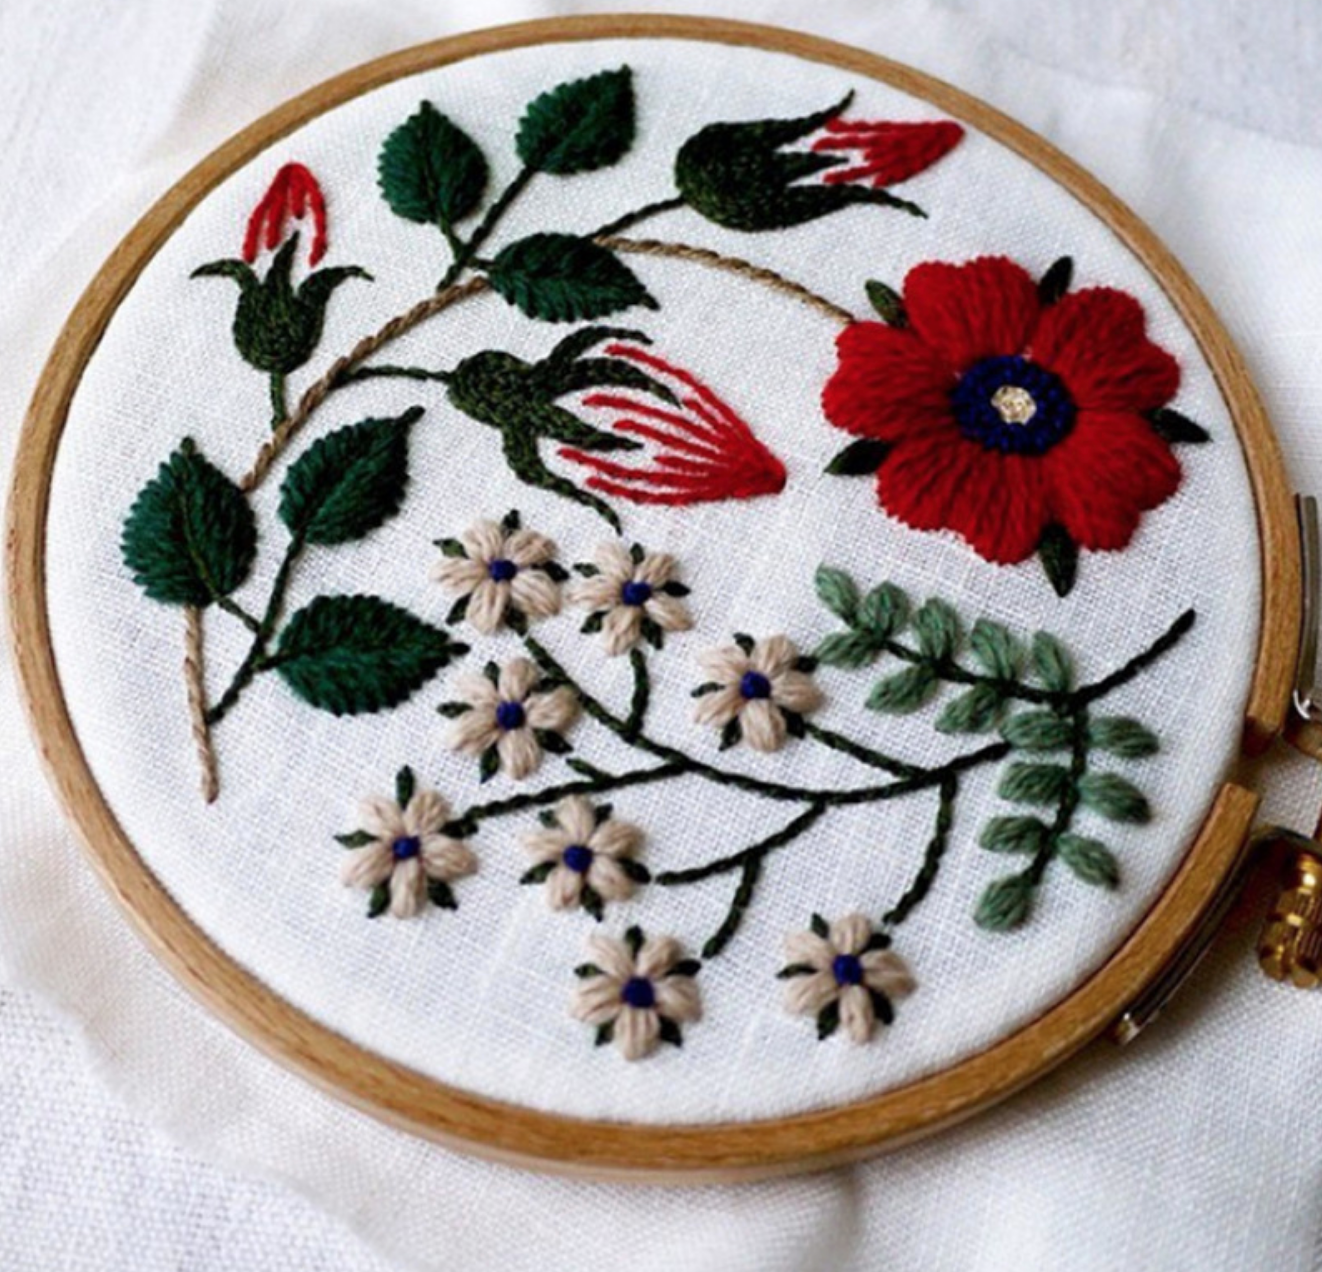 Red Poppy Floral Embroidery